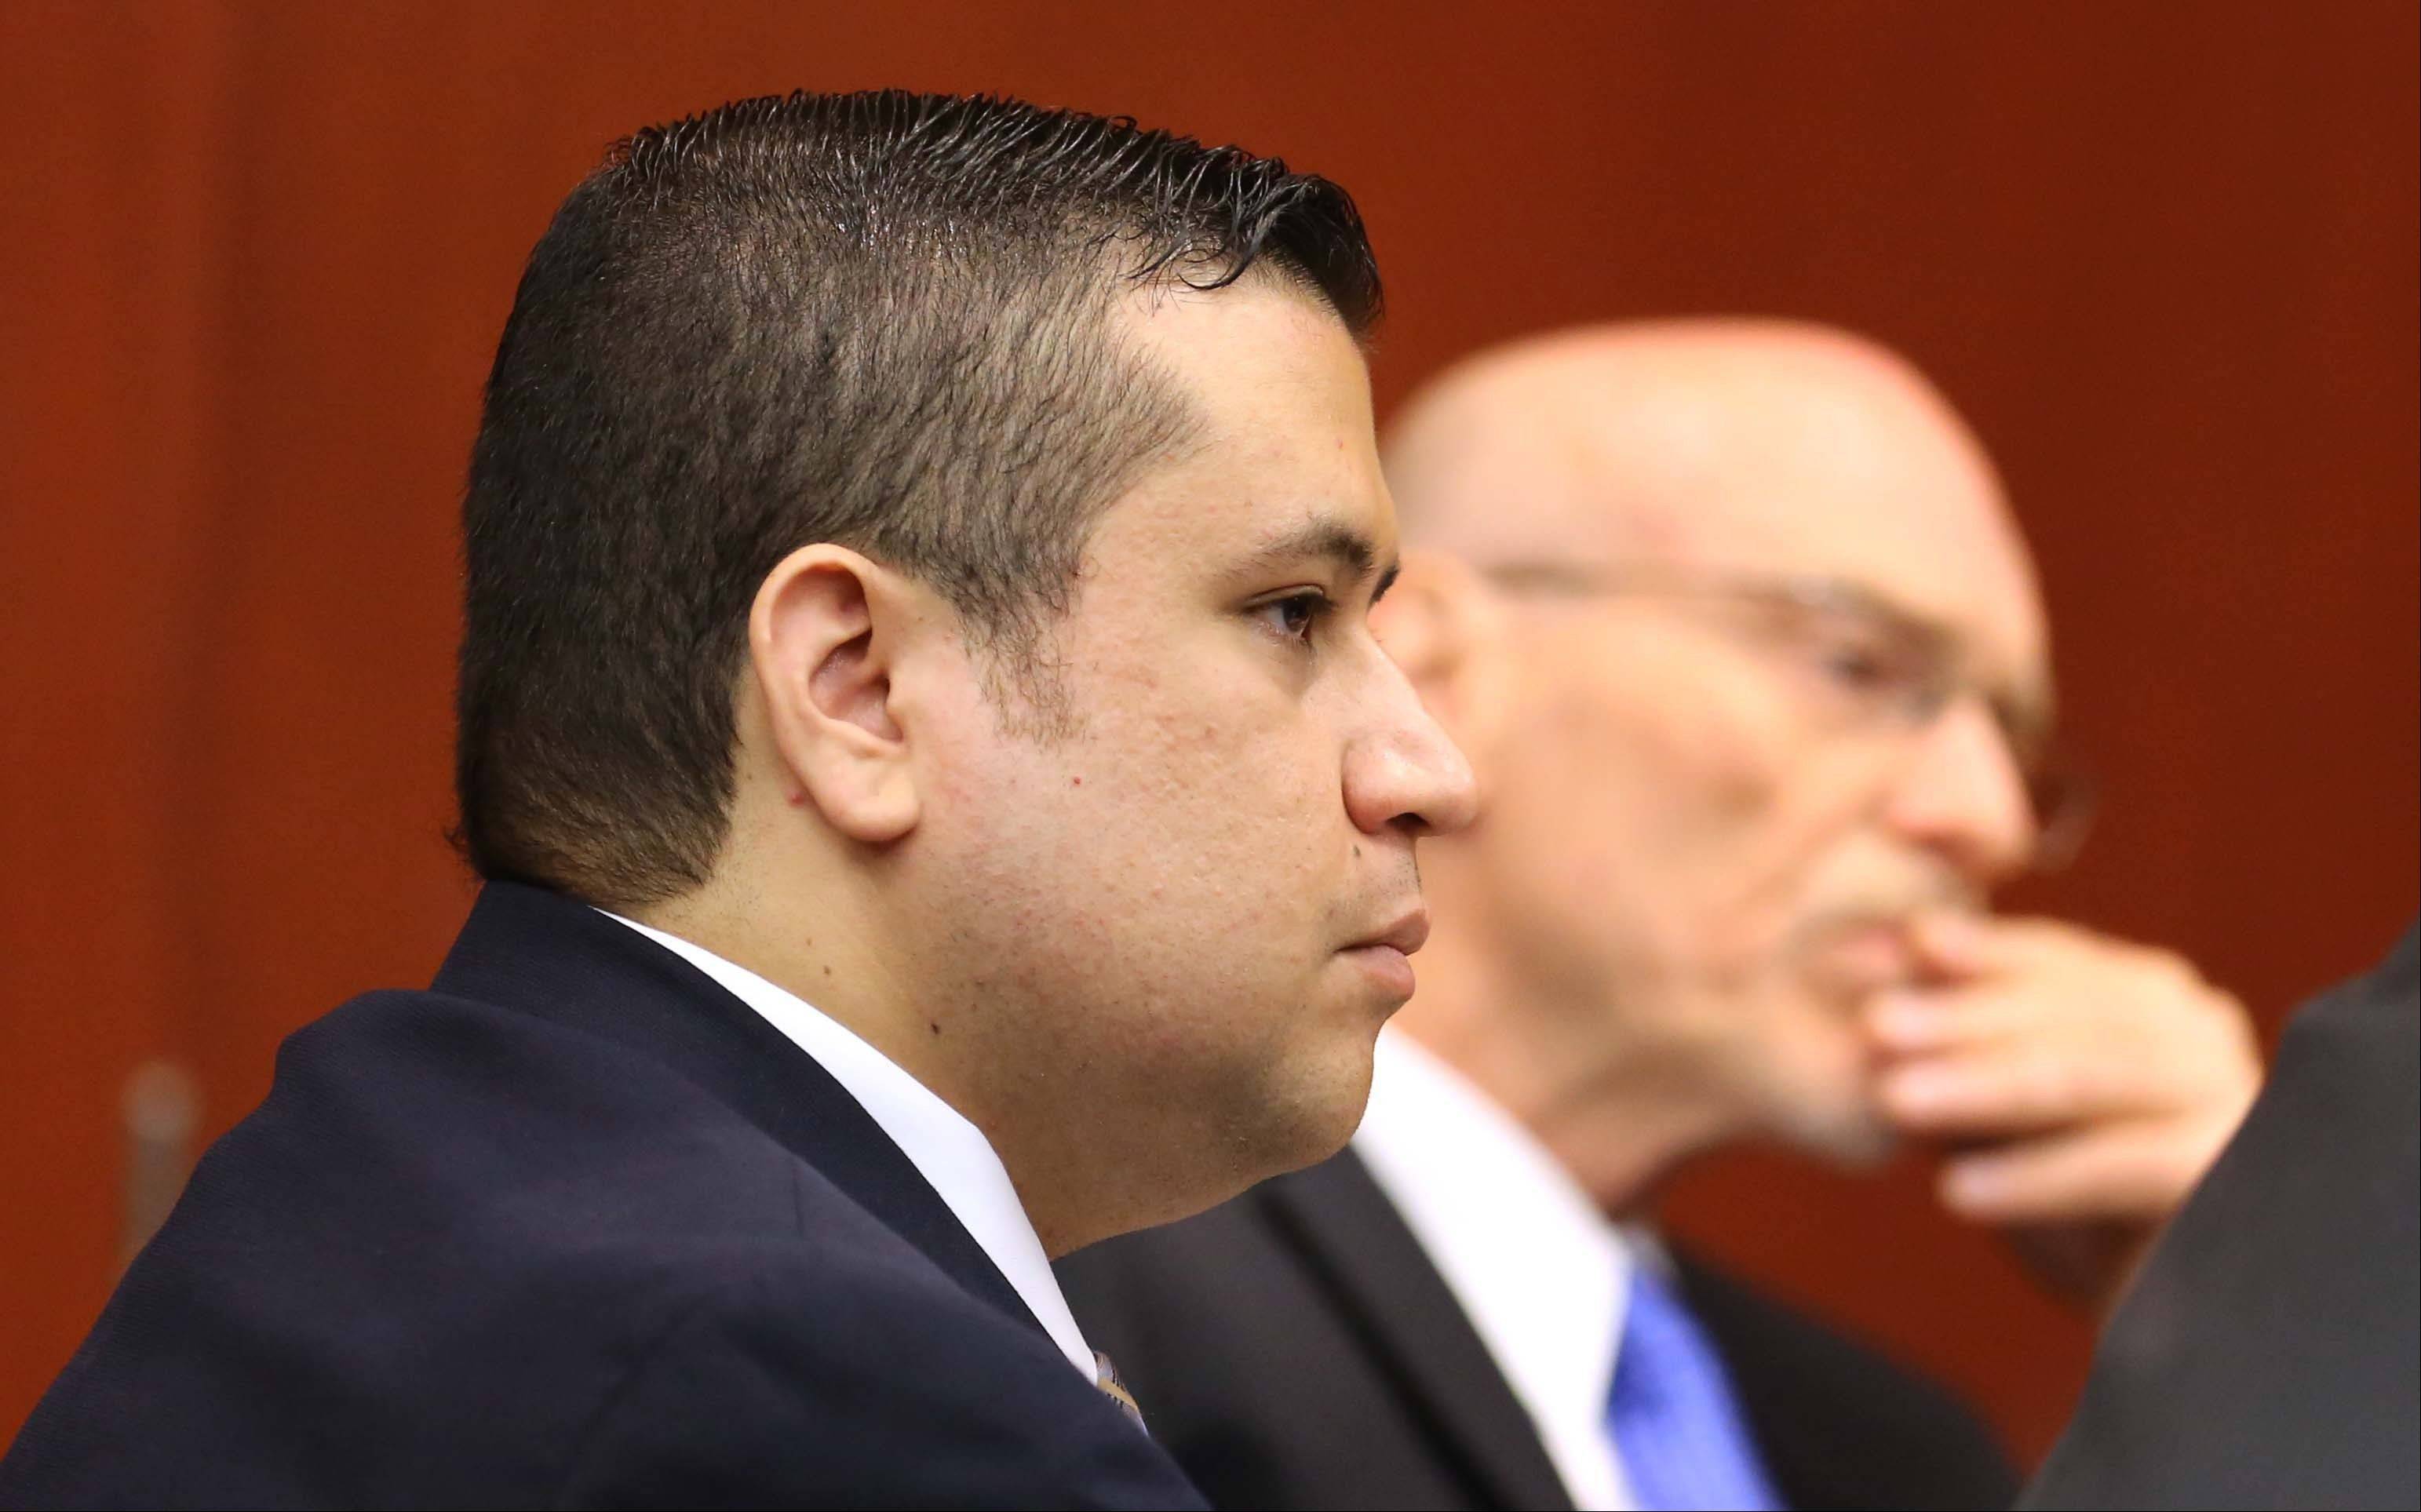 George Zimmerman, left, and defense attorney Don West listen to the questioning of prospective jurors in Seminole circuit court for his trial, in Sanford, Fla., Tuesday, June 11, 2013. Zimmerman has been charged with second-degree murder for the 2012 shooting death of Trayvon Martin.